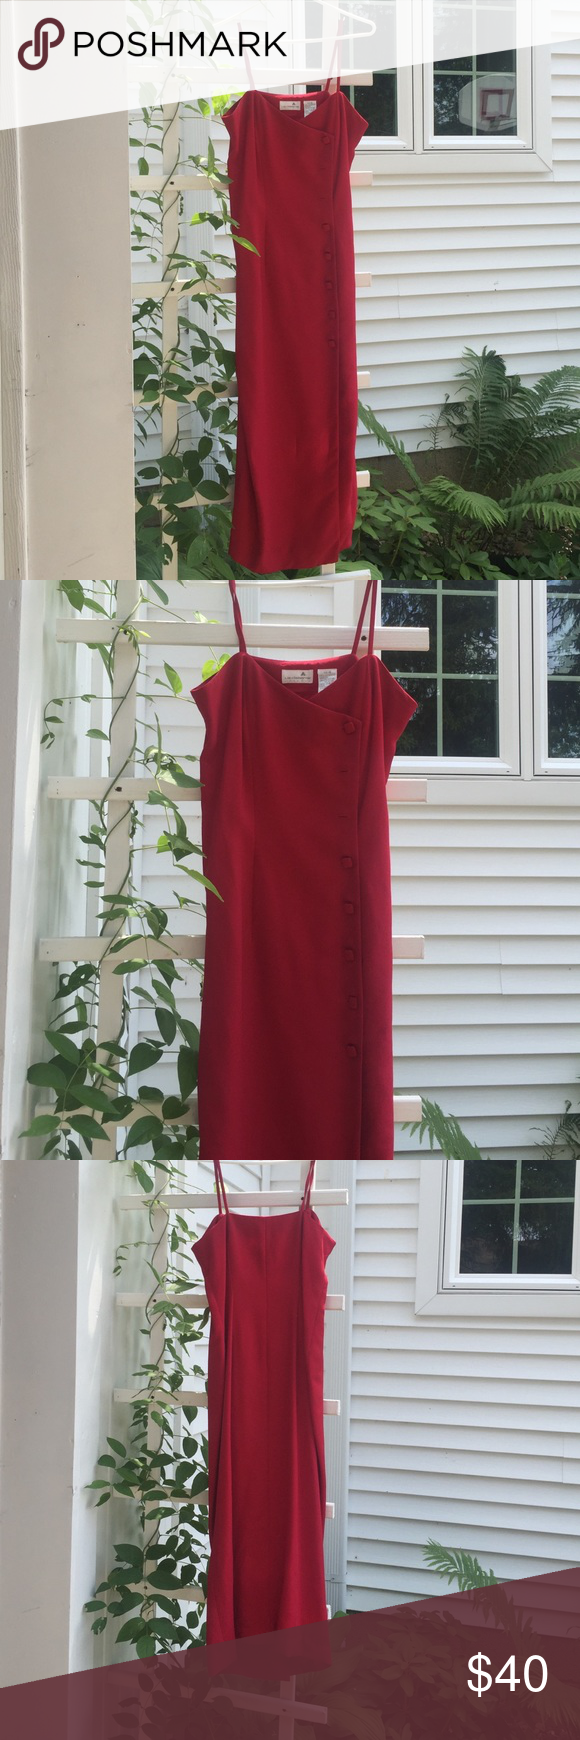 Dress Liz Claiborne Formal And Customer Support